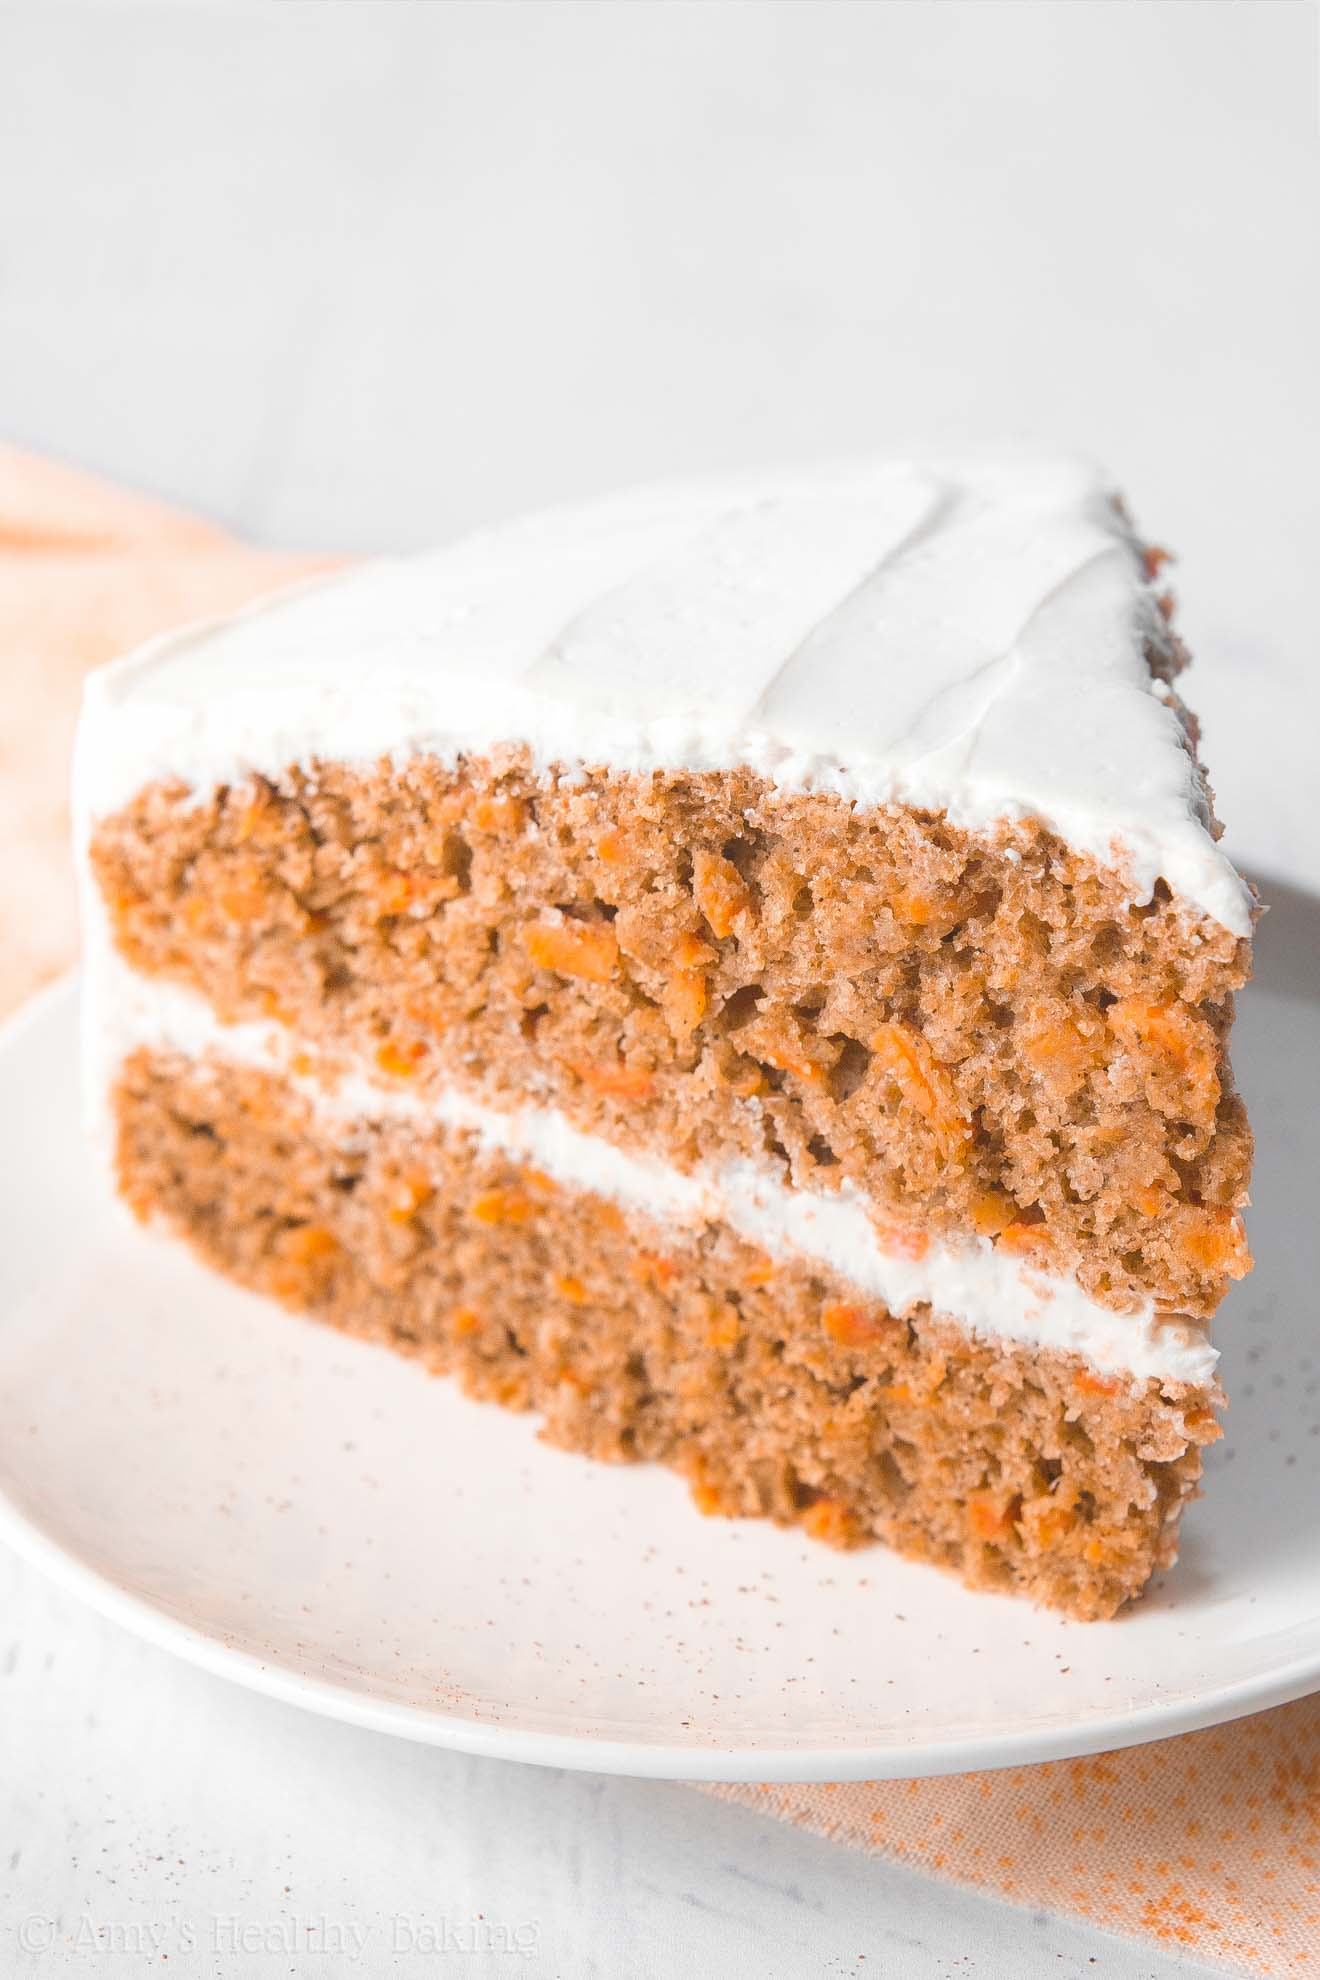 Healthy Low Fat Carrot Cake Recipe